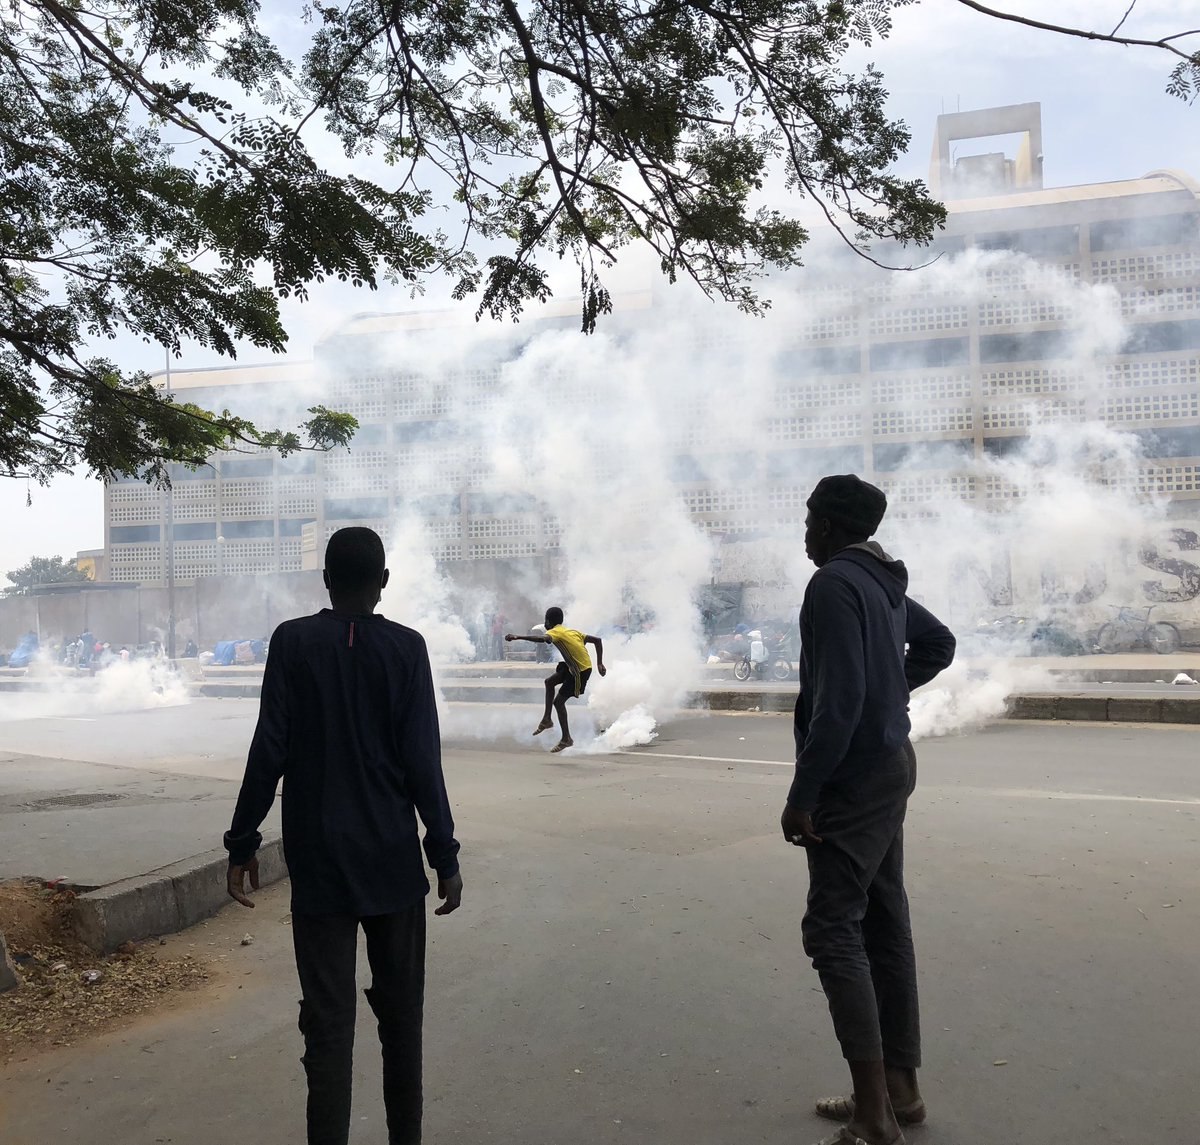 #Senegal: More clashes in Dakar between Sonko's supporters and security forces around Cheikh Anta Diop University. #Kebetu #FreeSenegal